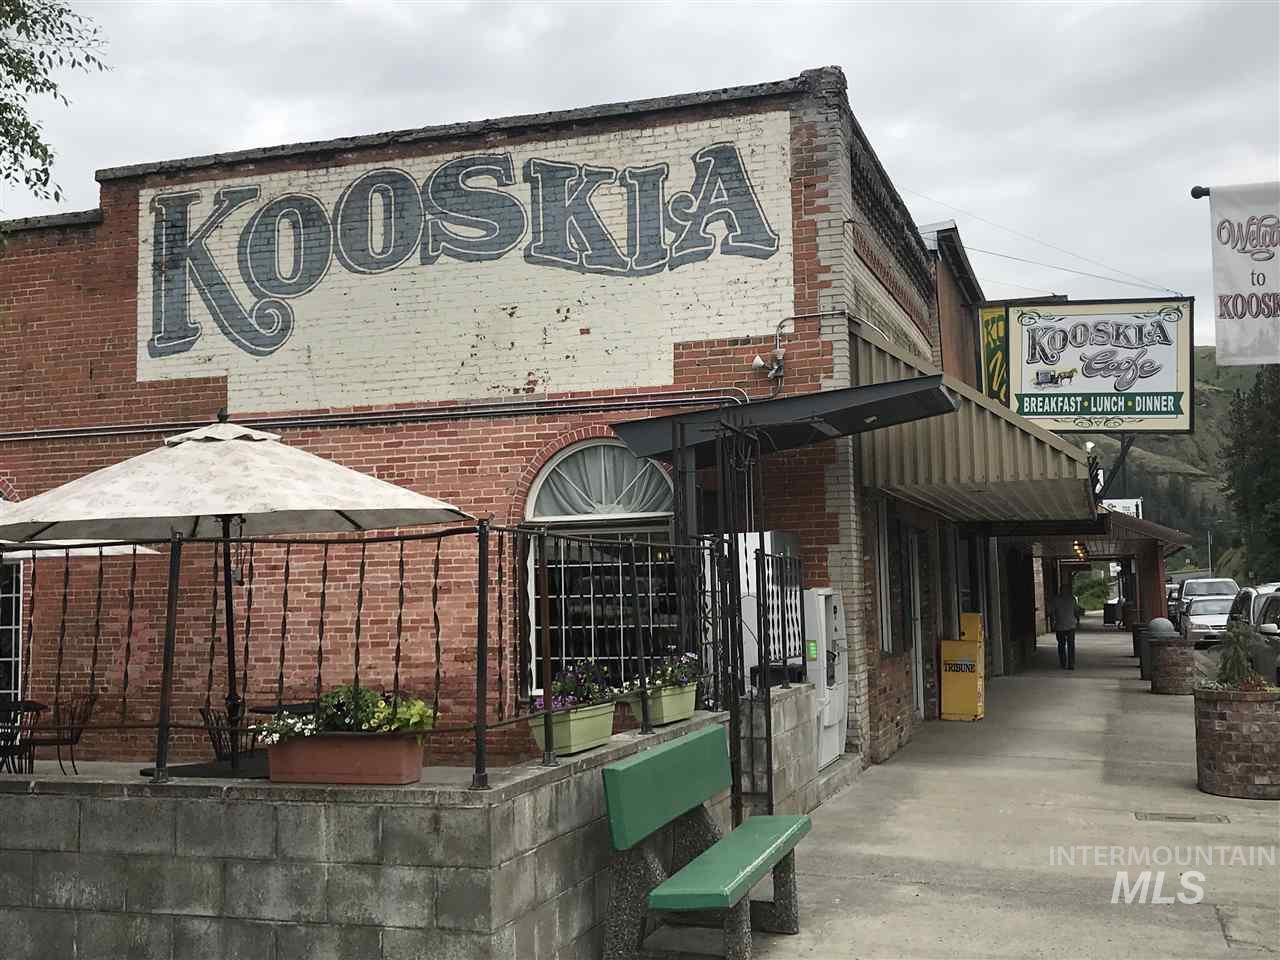 6 N Main Street, Kooskia, Idaho 83539, Business/Commercial For Sale, Price $355,000, 98730465